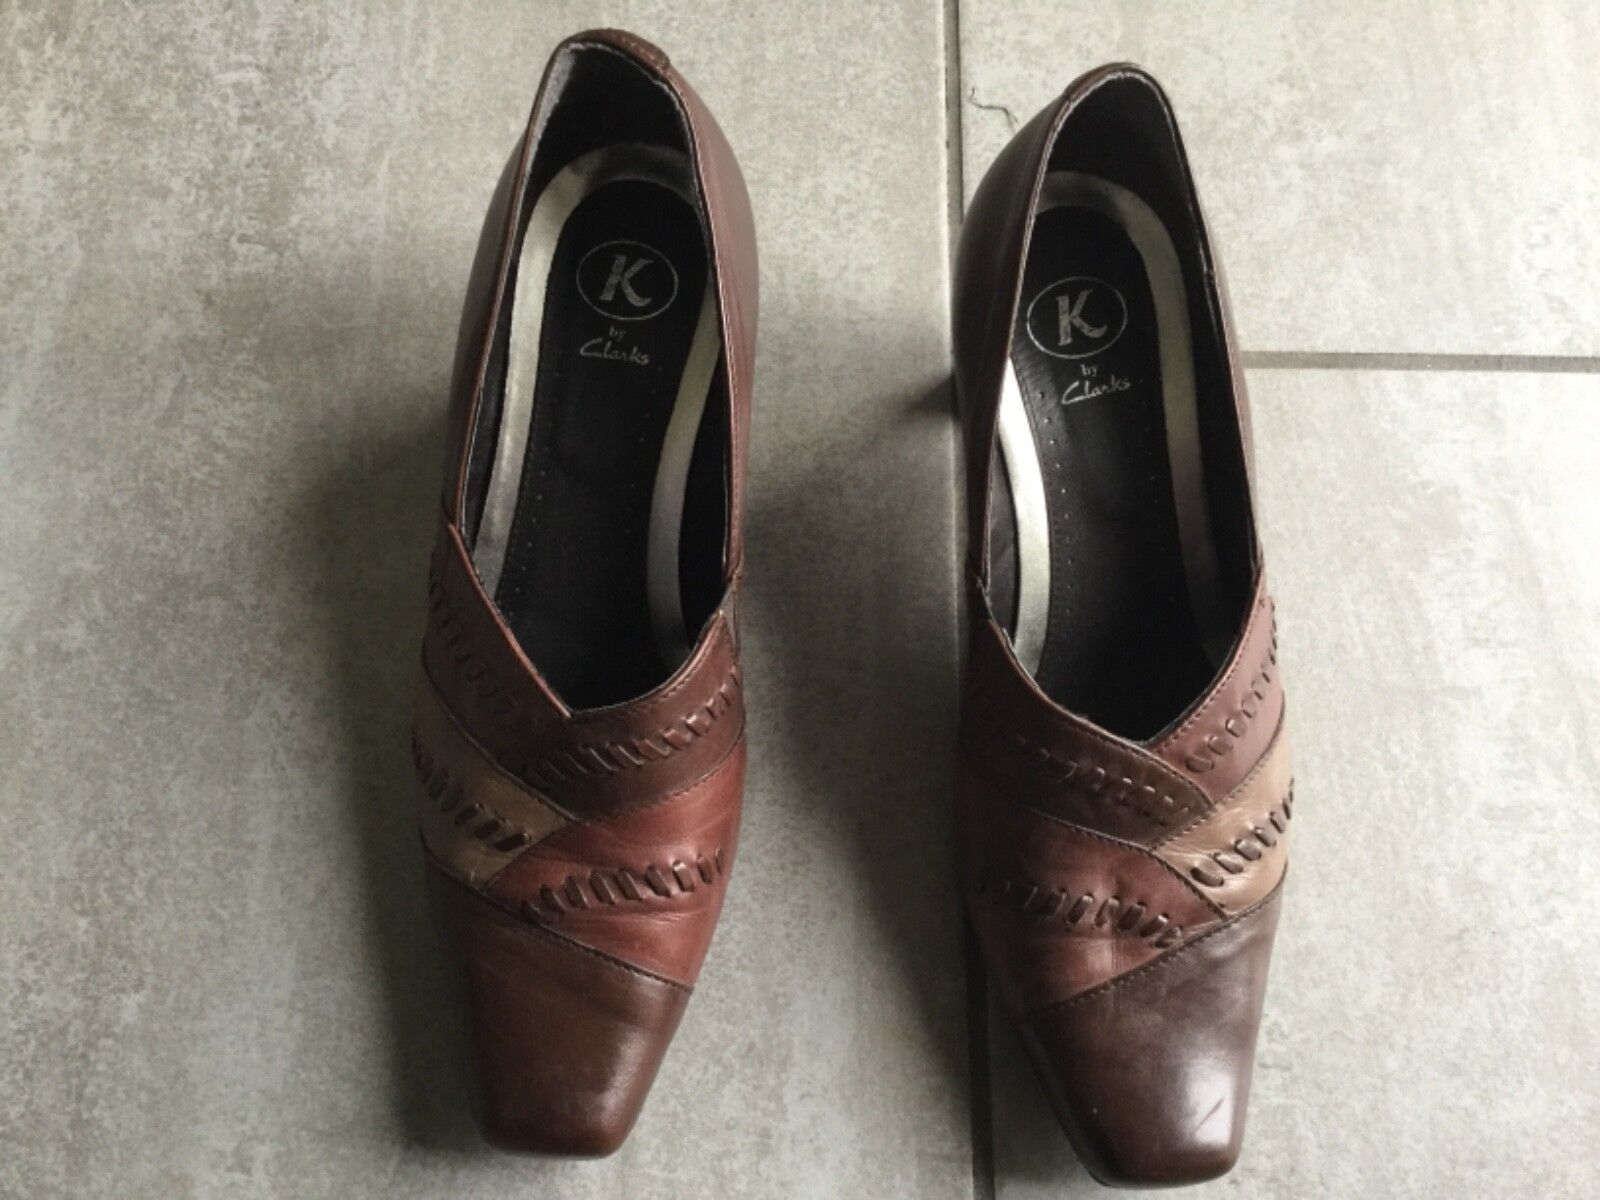 Clarks K Ladies 4. Brown Suede Heeled Shoes Size 4. Ladies Great Condition. 09c811